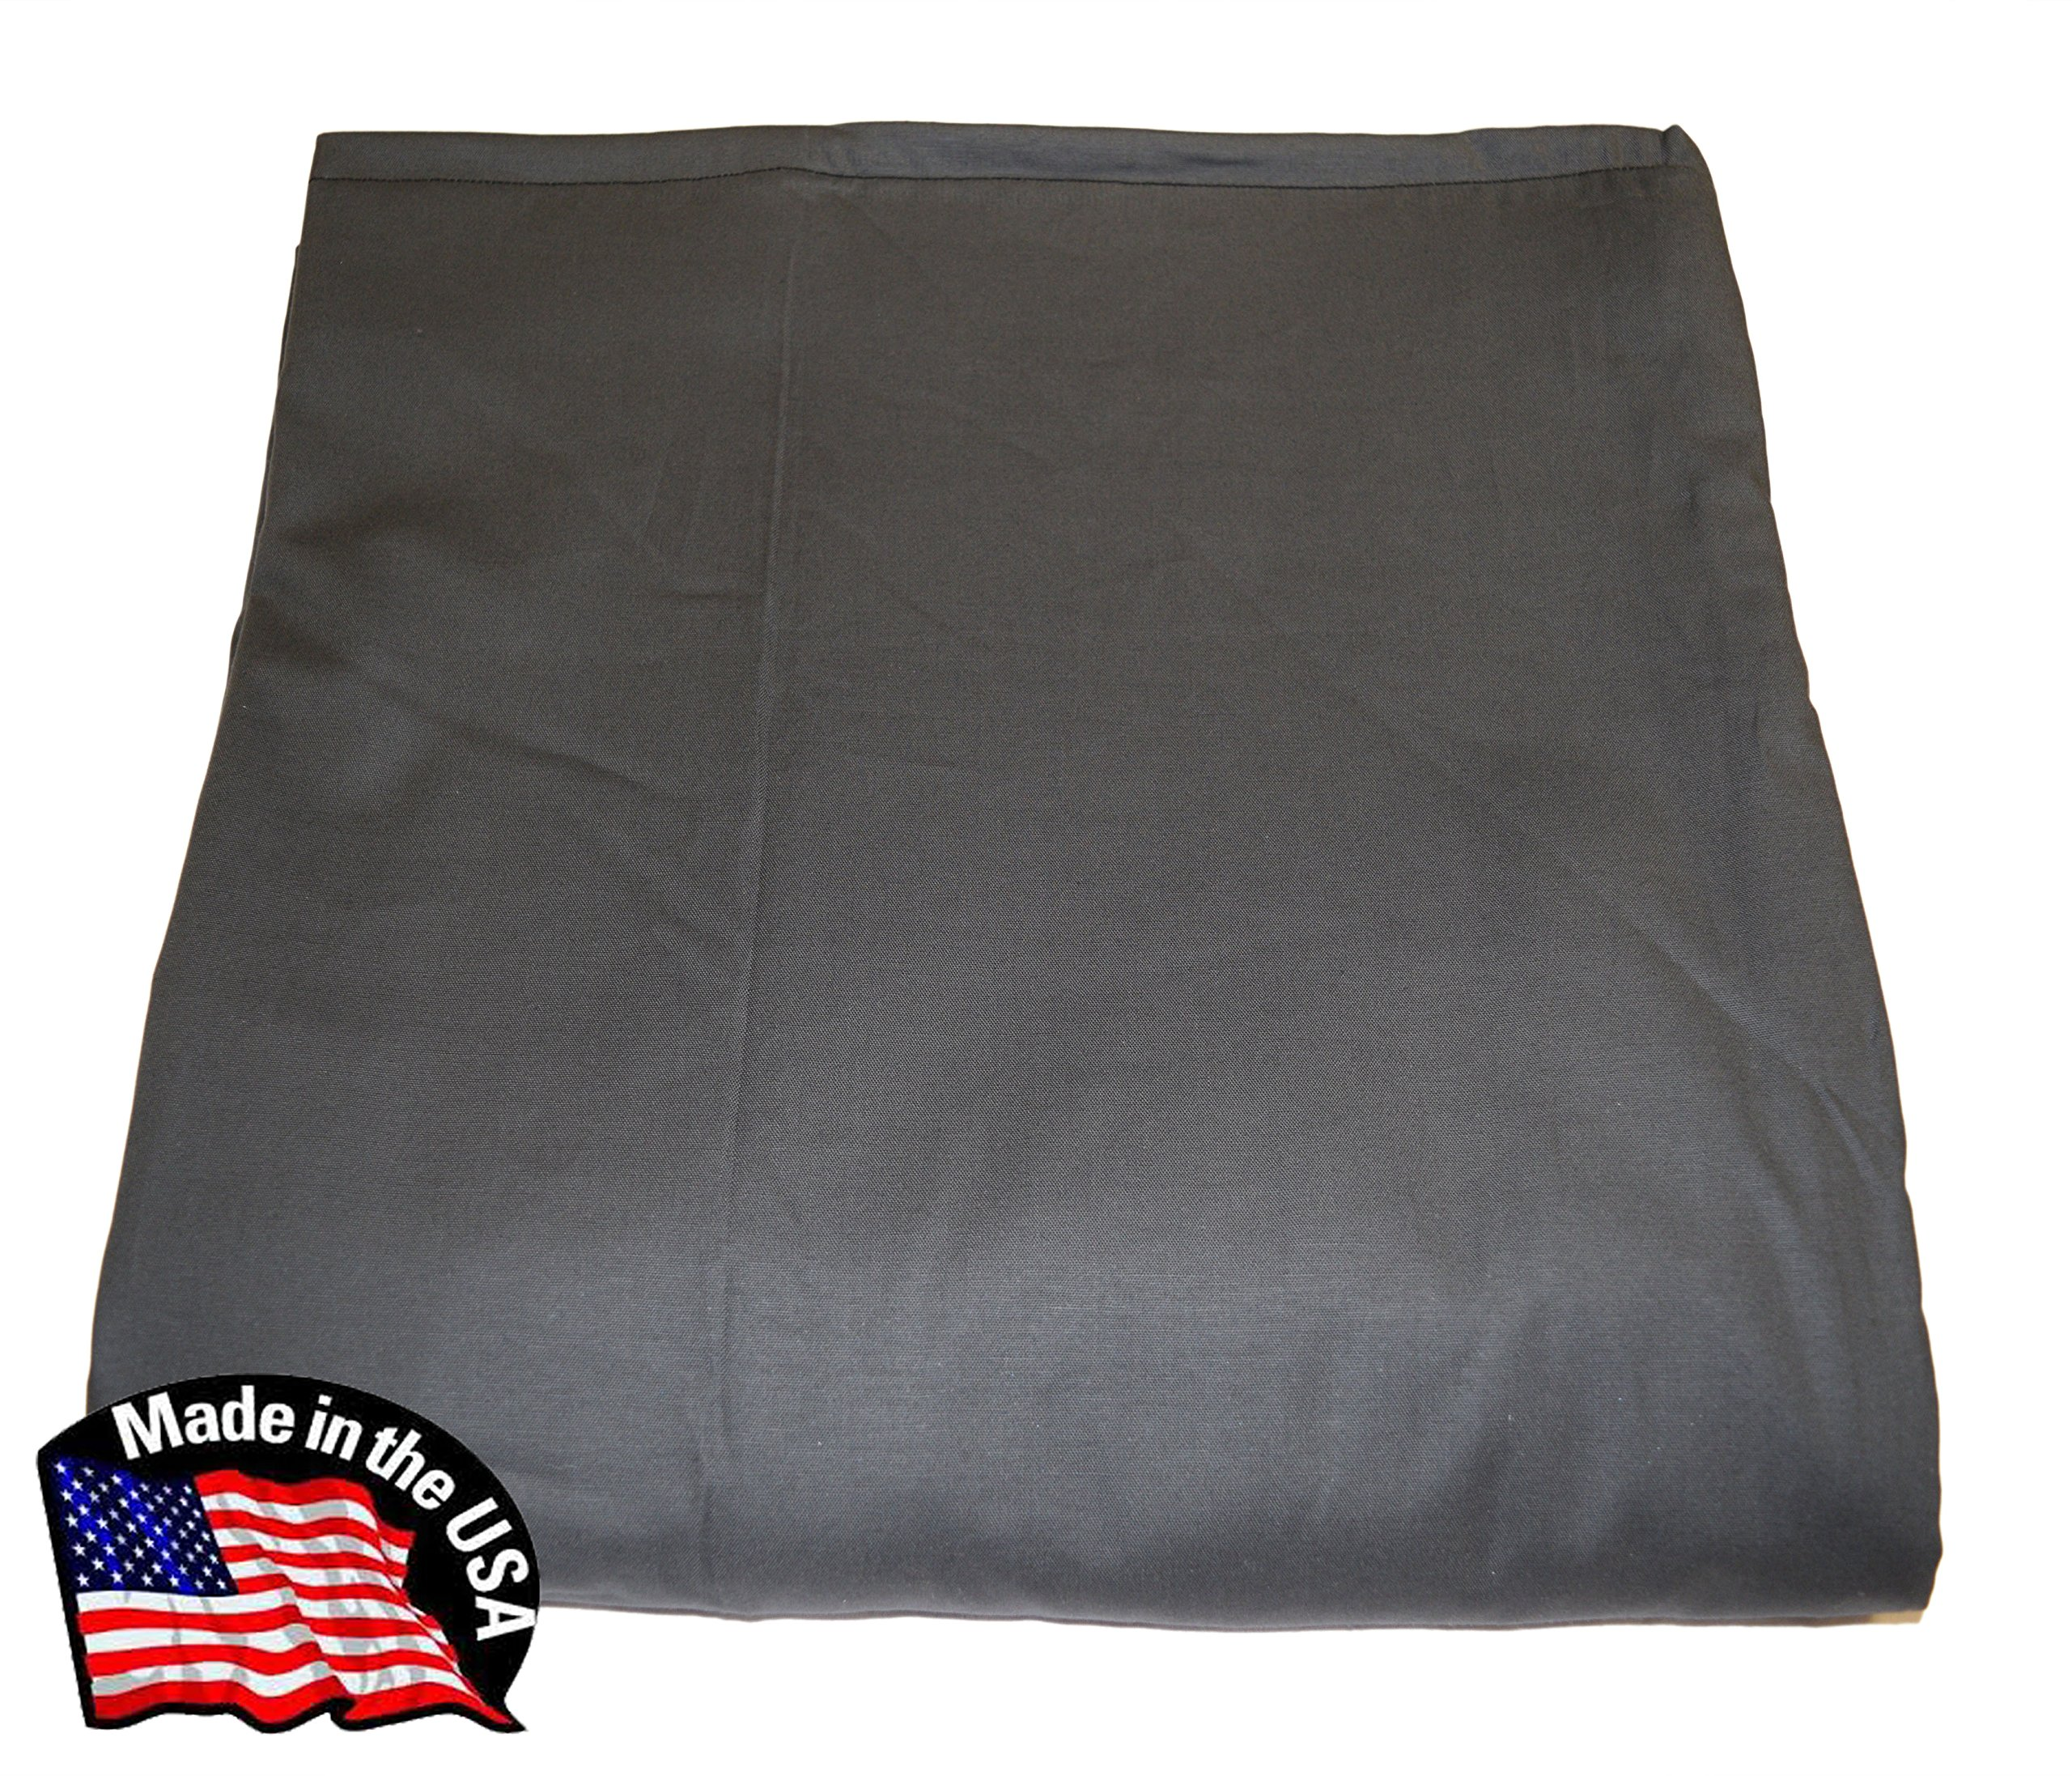 "WEIGHTED BLANKETS BY INDIA Made in AMERICA - Weighted Blanket SMOKE (5lb for 40lb) 48""x30"" Made with cool Cotton and Flannel - 11 color choices -15 size and weight options from 5–24lbs"